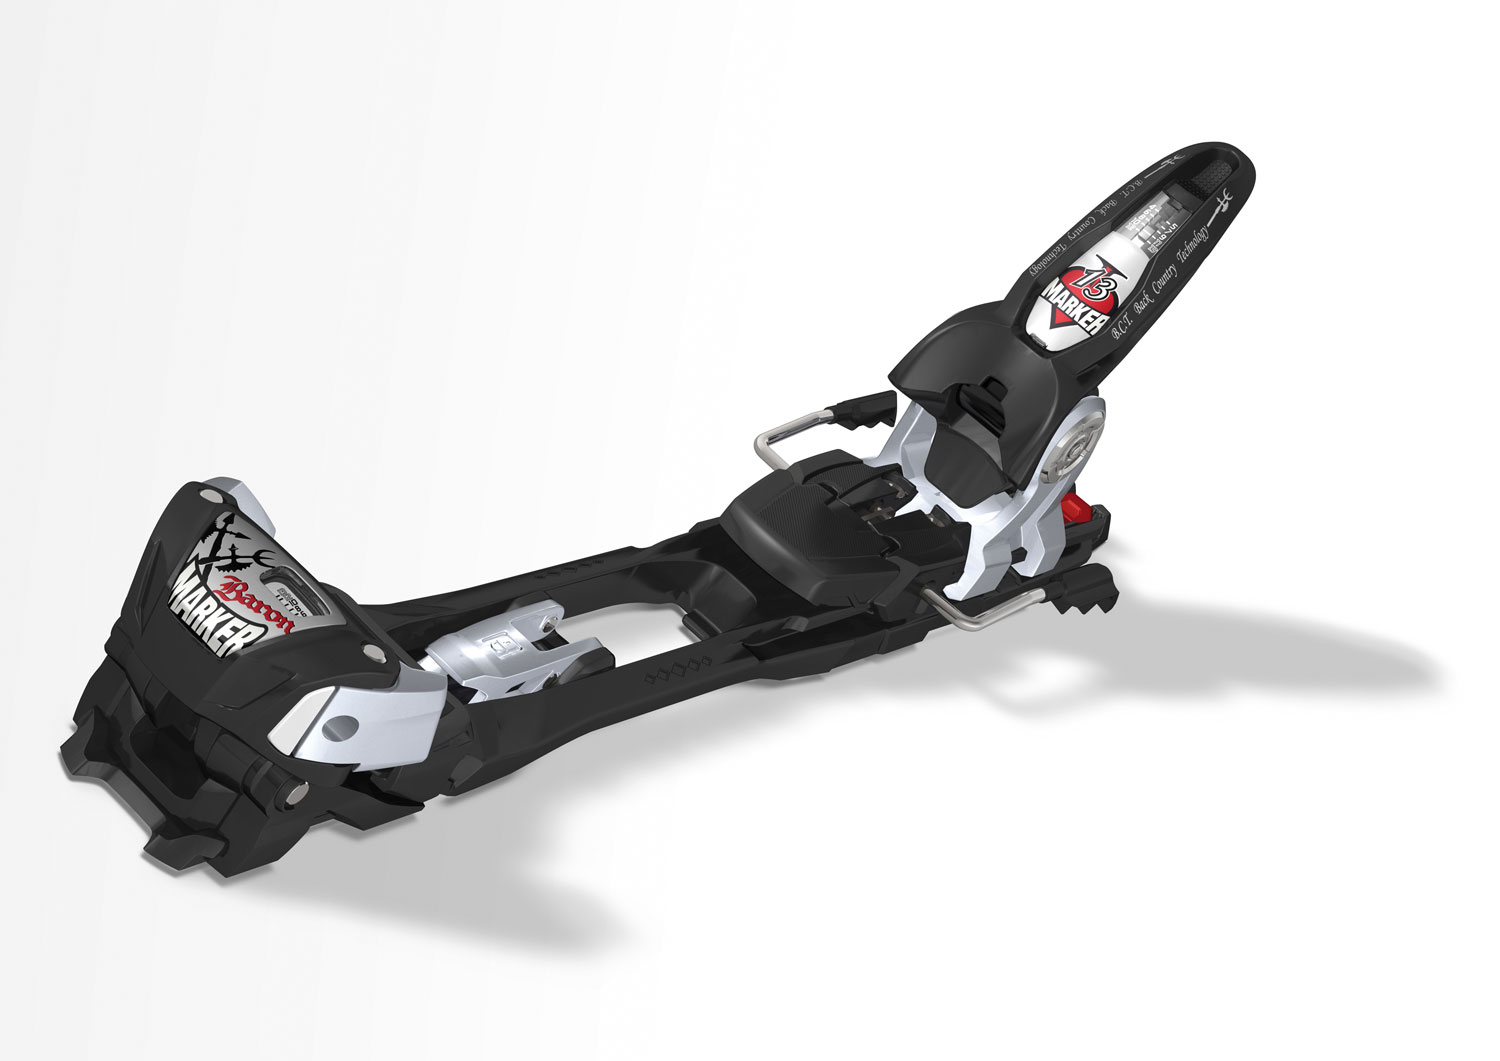 Ski The Baron is suited for lighter-weight big mountain skiers who want the performance of the triple-pivot toe and inter-pivot heel. It features 4-13 DIN range and a lighter weight construction for an overall weight of 2450(sm) and 2480(lg) grams per pair. Optional brake sizes 90mm,110mm and 130mm.Key Features of the Marker Baron Ski Bindings: Power-Width-Design For Maximum Power Transmission Low, Level Stand Height Shortest Frame Of All Hiking Models In The Market 10 Mm Wider Interface Than Traditional Bindings (Not Built Around The Historic 63 Mm Sl Ski Like Conventional Bindings) Connection Brackets Extend Upward On The Outside, For The Ultimate Power Transmission Patented BCT (Back Country Technology) Uphill Hiking Mode Easy Adjustment From Ride To Hike New: Same Hiking Aid As The Tour Bindings With 7degrees And 13degrees Position Protected BCT Lever In Ski Mode 40 Mm Backward Movement In Bc Mode For Better Balanced Ski Swing Weight And Easier Kick Turns Recommended For Skis Over 76 Mm Din Range 4 - 13 Recom. Skier's Weight 80+ Lbs. Stand Height W/O Ski 36 Mm Toe System Triple Pivot Elite Gliding AFD Height Adjustable/Alpine/At Step-In Heel Inter-Pivot EPS System Hike Function Integrated Climbing Aid Freeride Brake No-Pull-Out Screws - $264.95